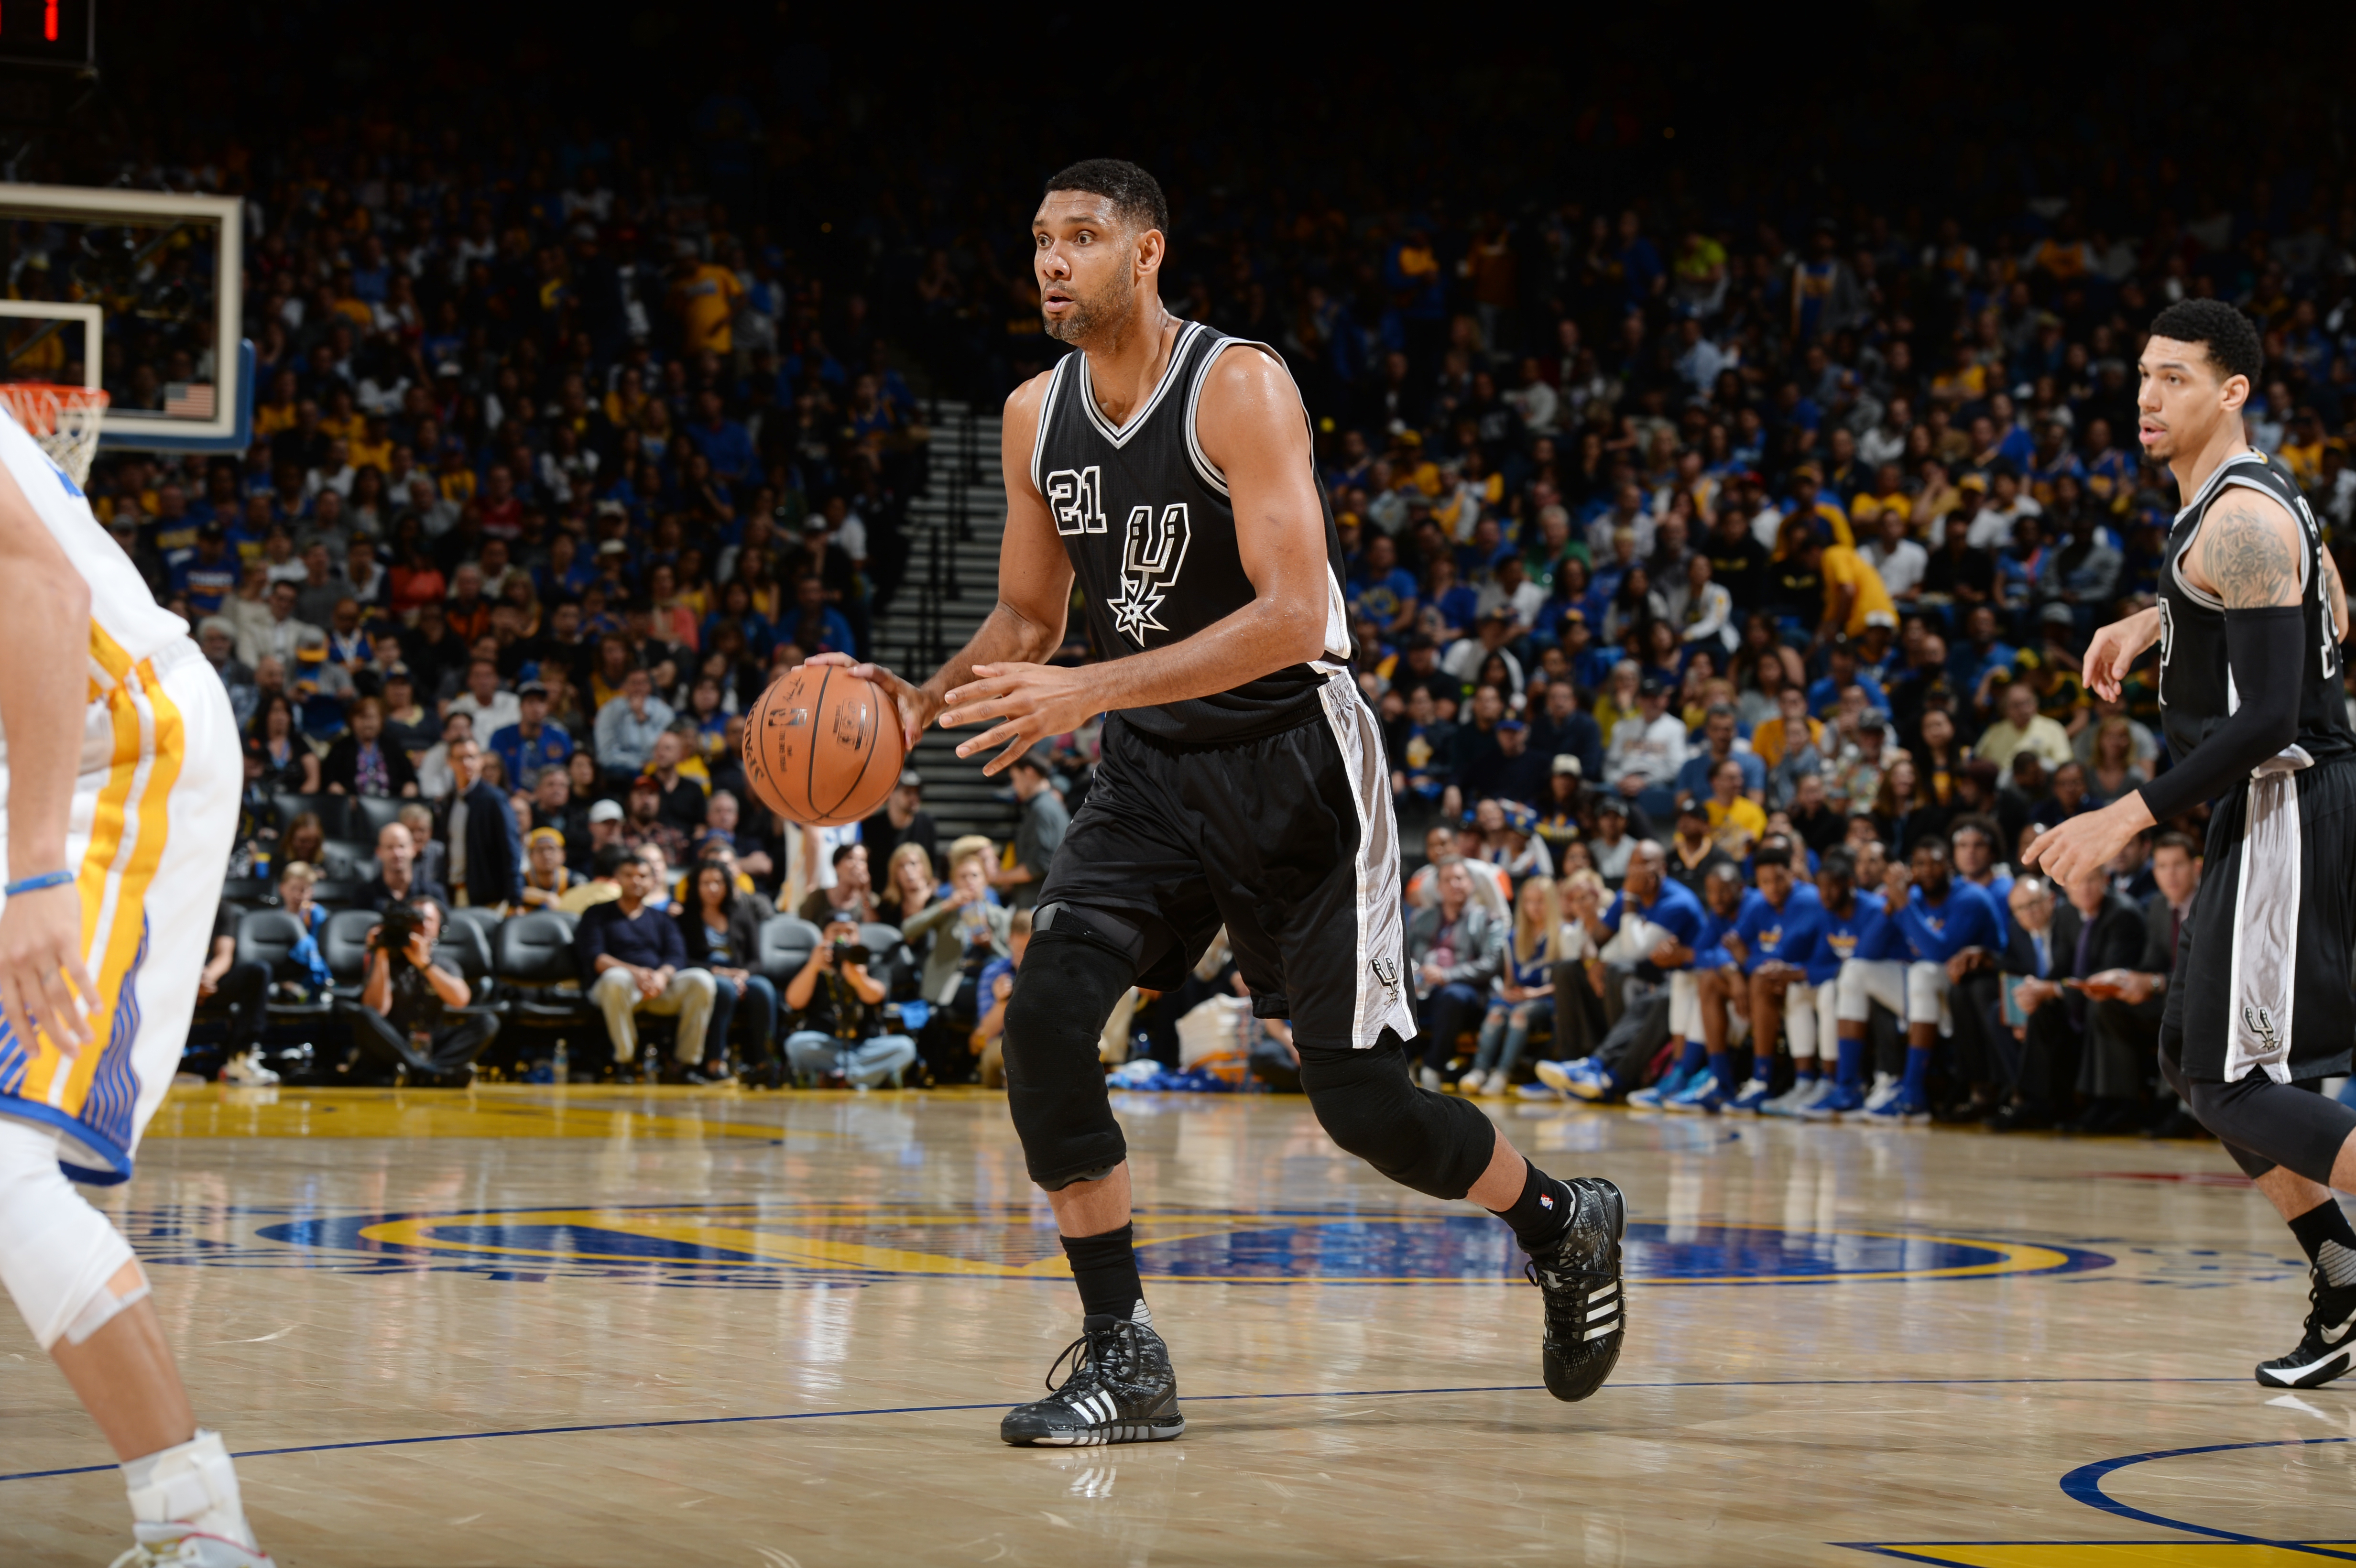 OAKLAND, CA - APRIL 7:  Tim Duncan #21 of the San Antonio Spurs handles the ball against the Golden State Warriors on April 7, 2016 at ORACLE Arena in Oakland, California. (Photo by Garrett Ellwood/NBAE via Getty Images)